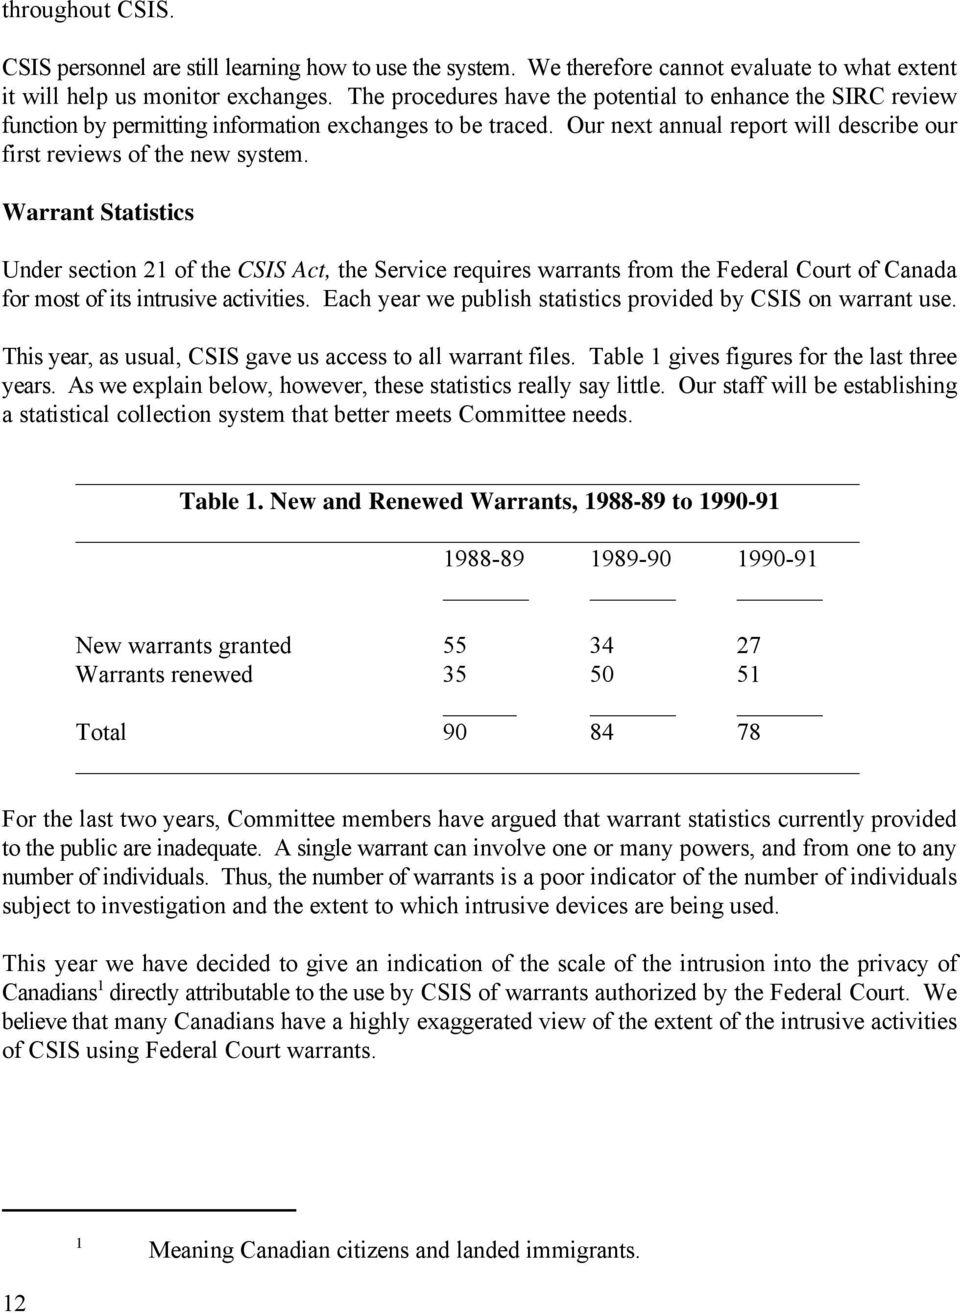 Warrant Statistics Under section 21 of the CSIS Act, the Service requires warrants from the Federal Court of Canada for most of its intrusive activities.